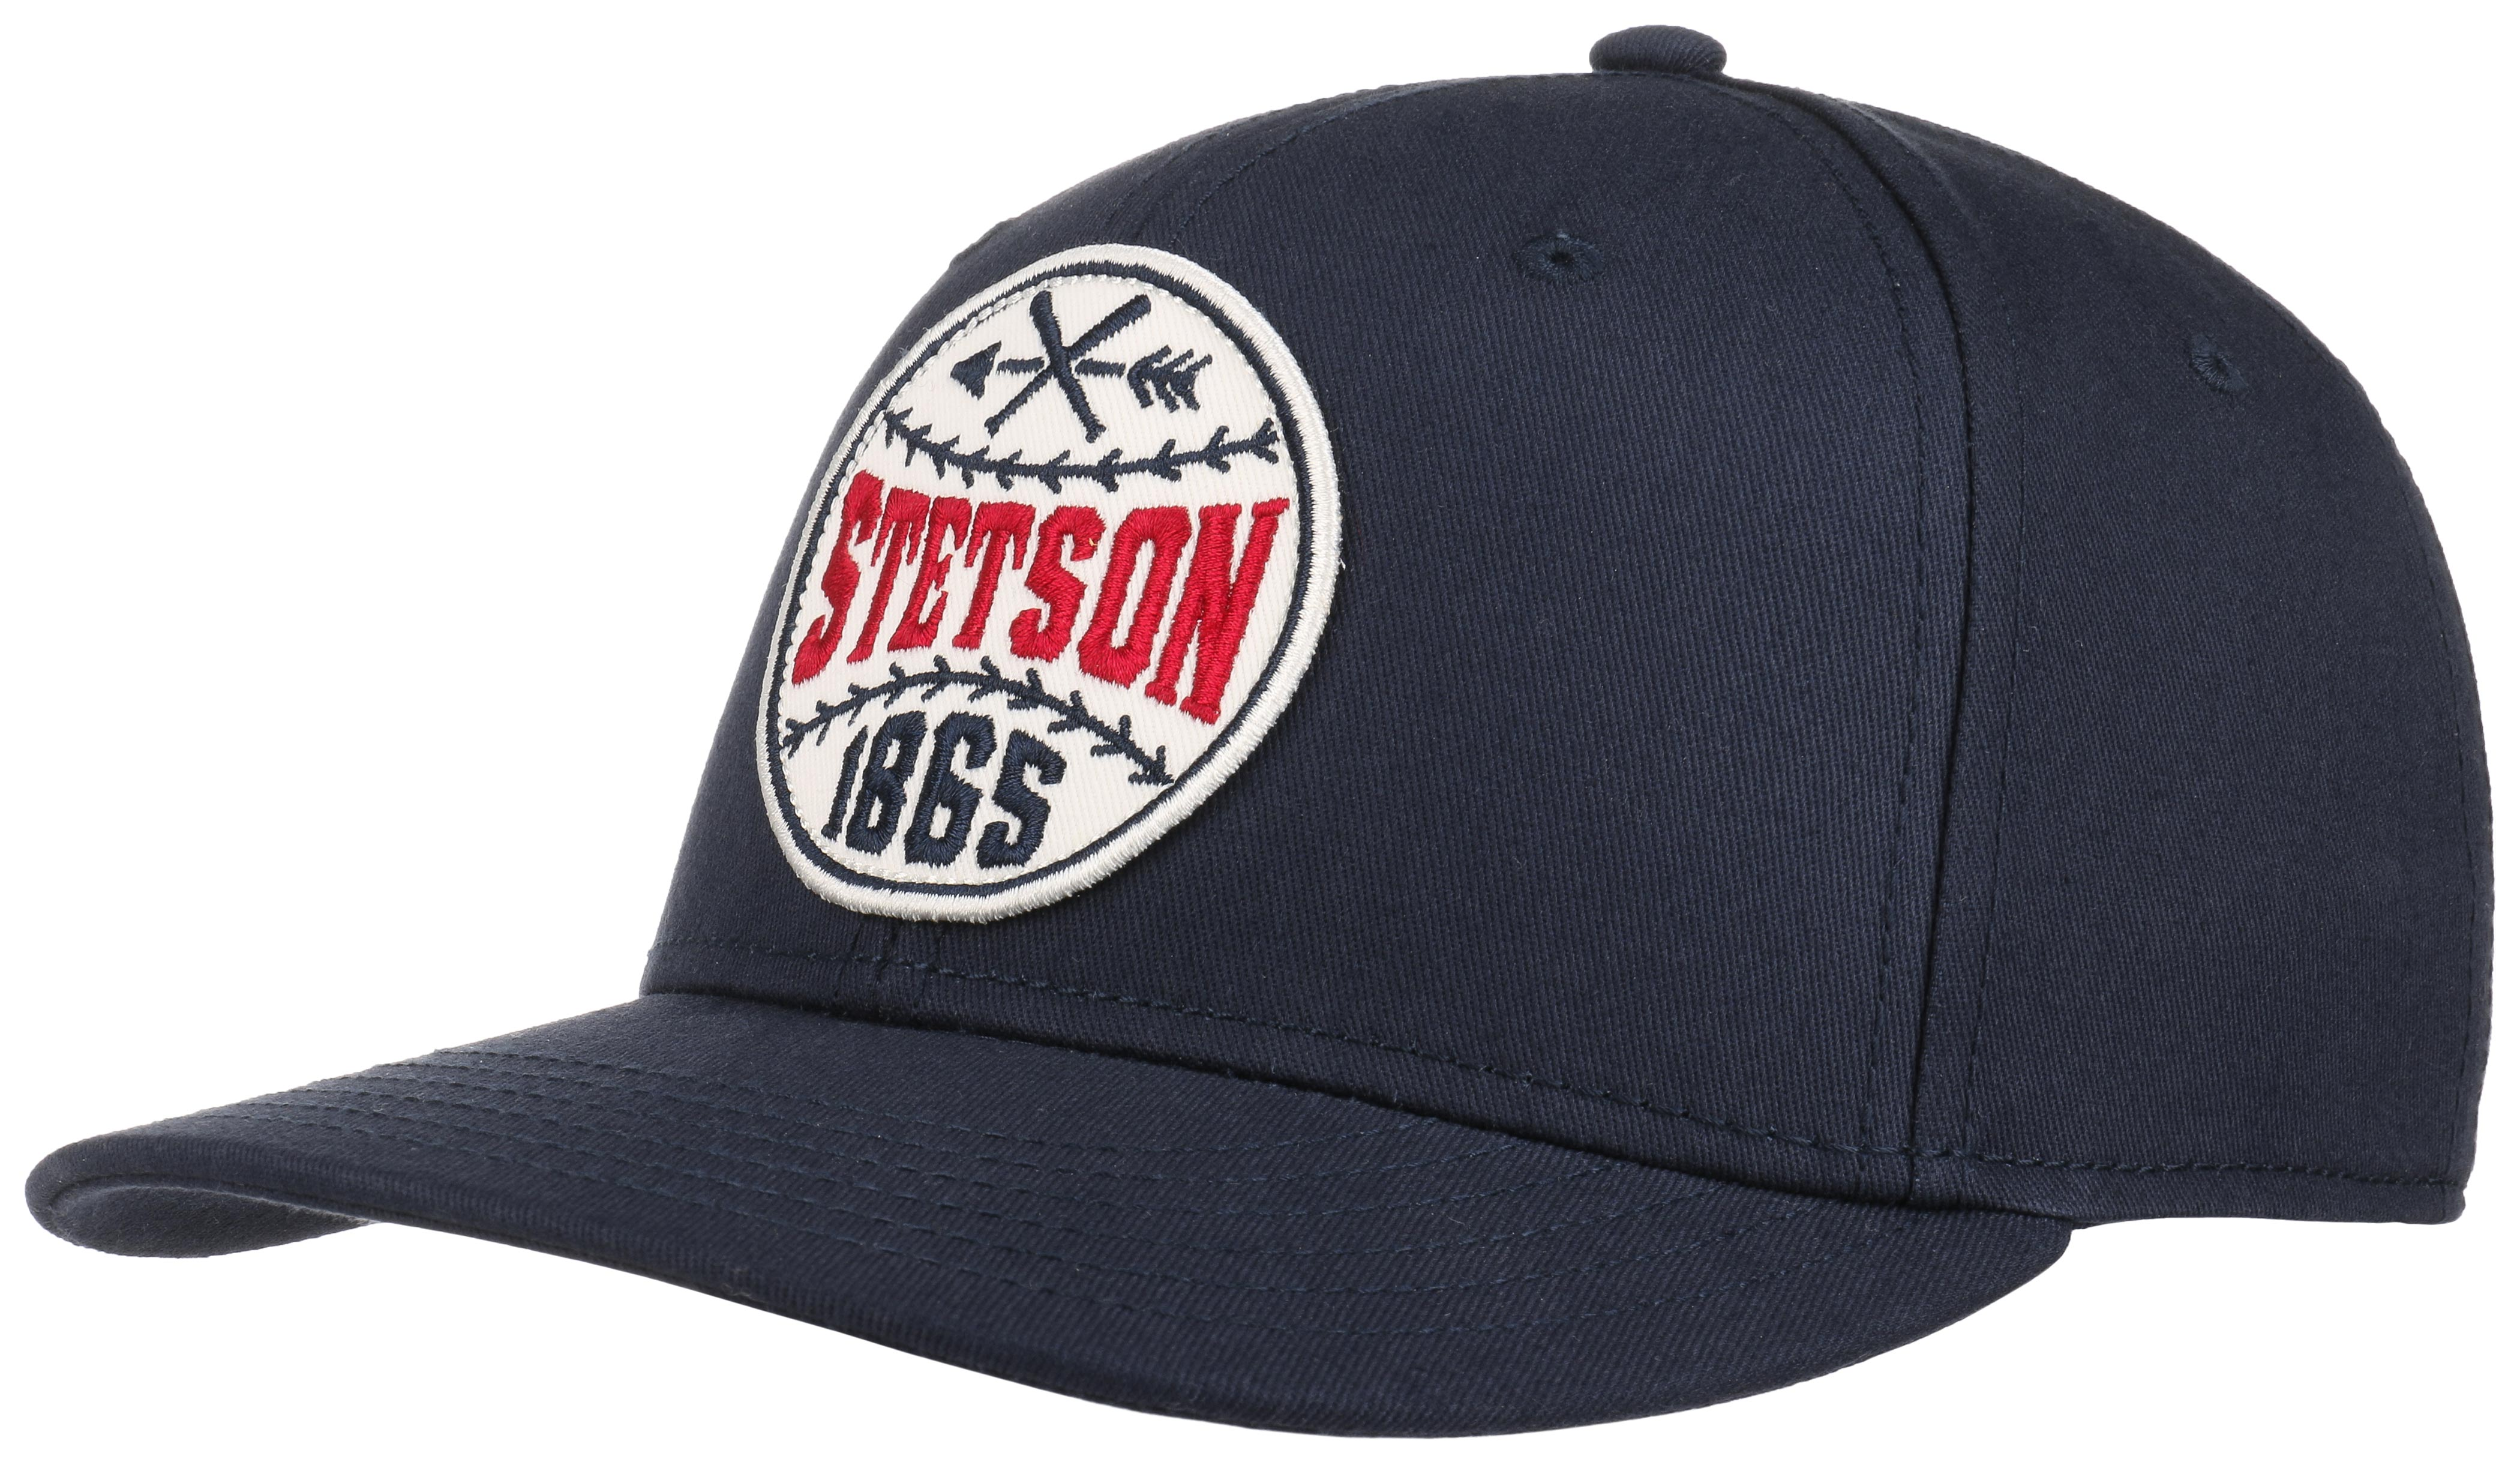 Stetson Base- and Racingcaps